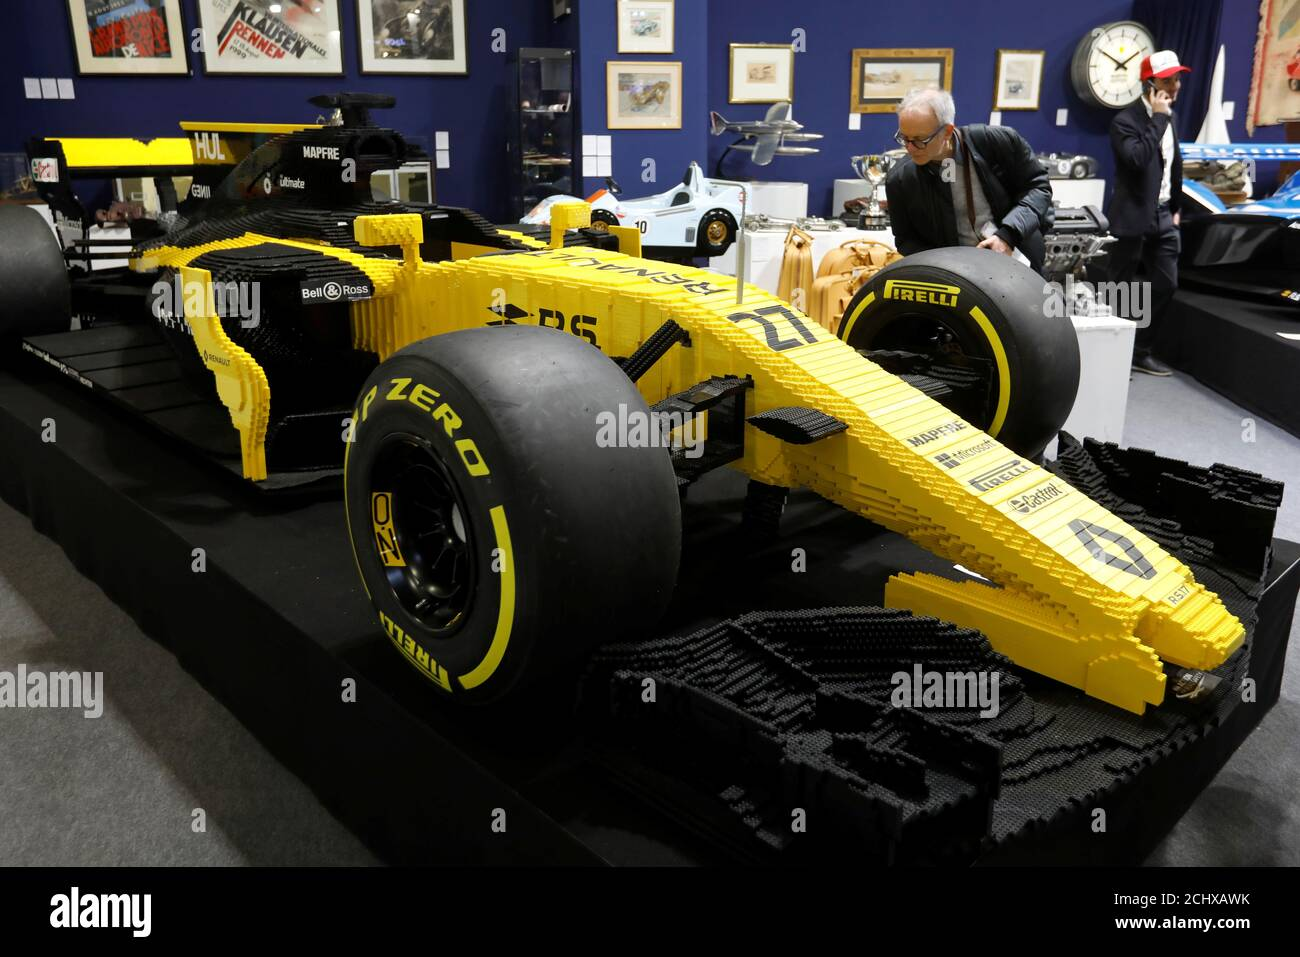 A full-scale sculpture of a 2017 Formula one Renault built with 313 000 LEGO bricks is displayed before to be up for sale by auction house Artcurial during the Retromobile car show in Paris, France, February 6, 2019.  REUTERS/Charles Platiau Stock Photo